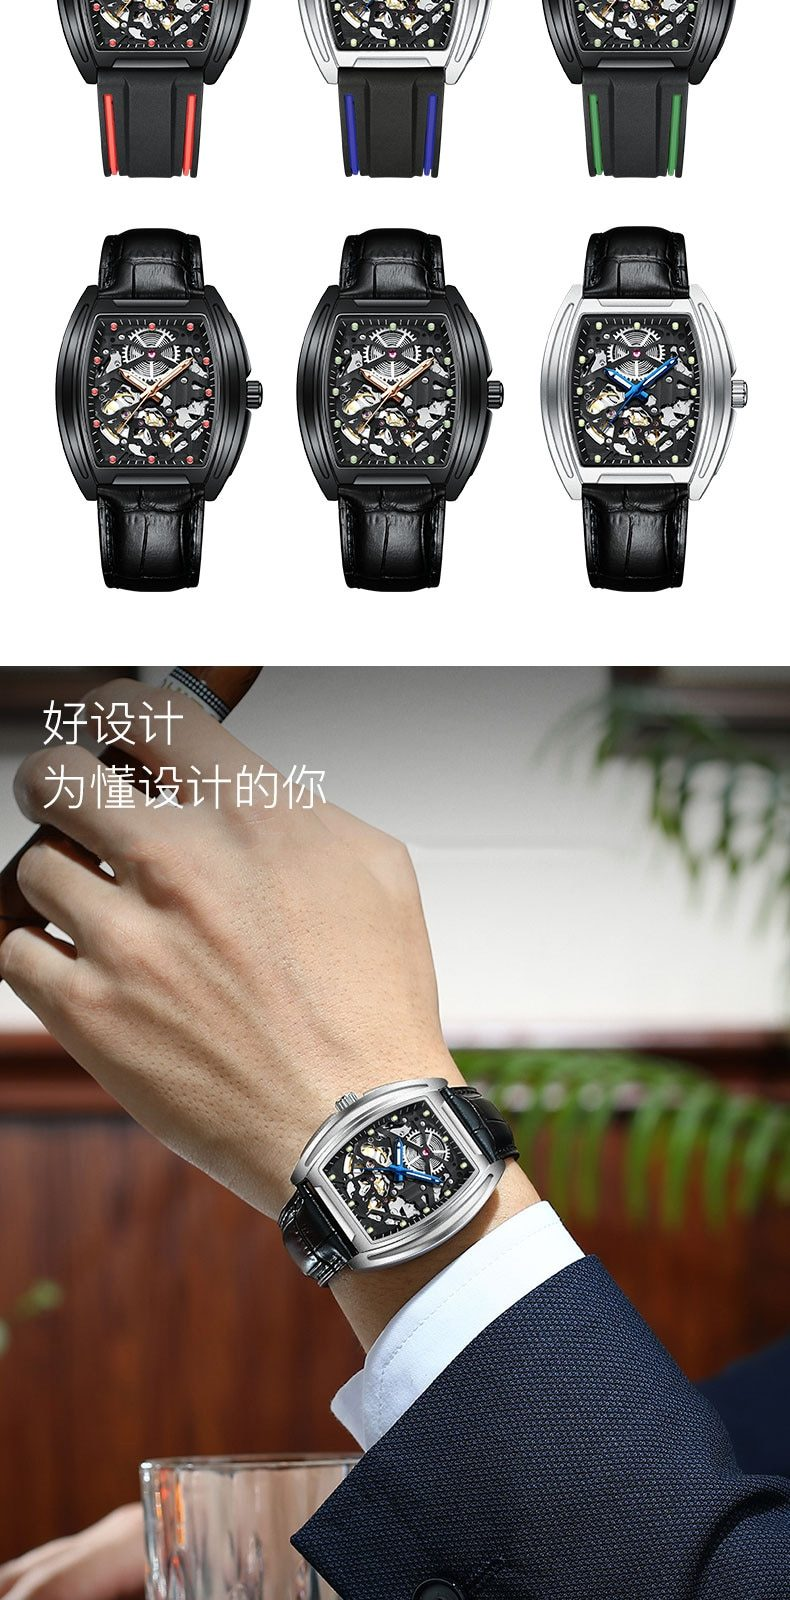 AILANG Watch Men's Automatic Square Mechanical Watch Men's Watch Hollow Fashion Business Silicone Strap Watch 2020 New